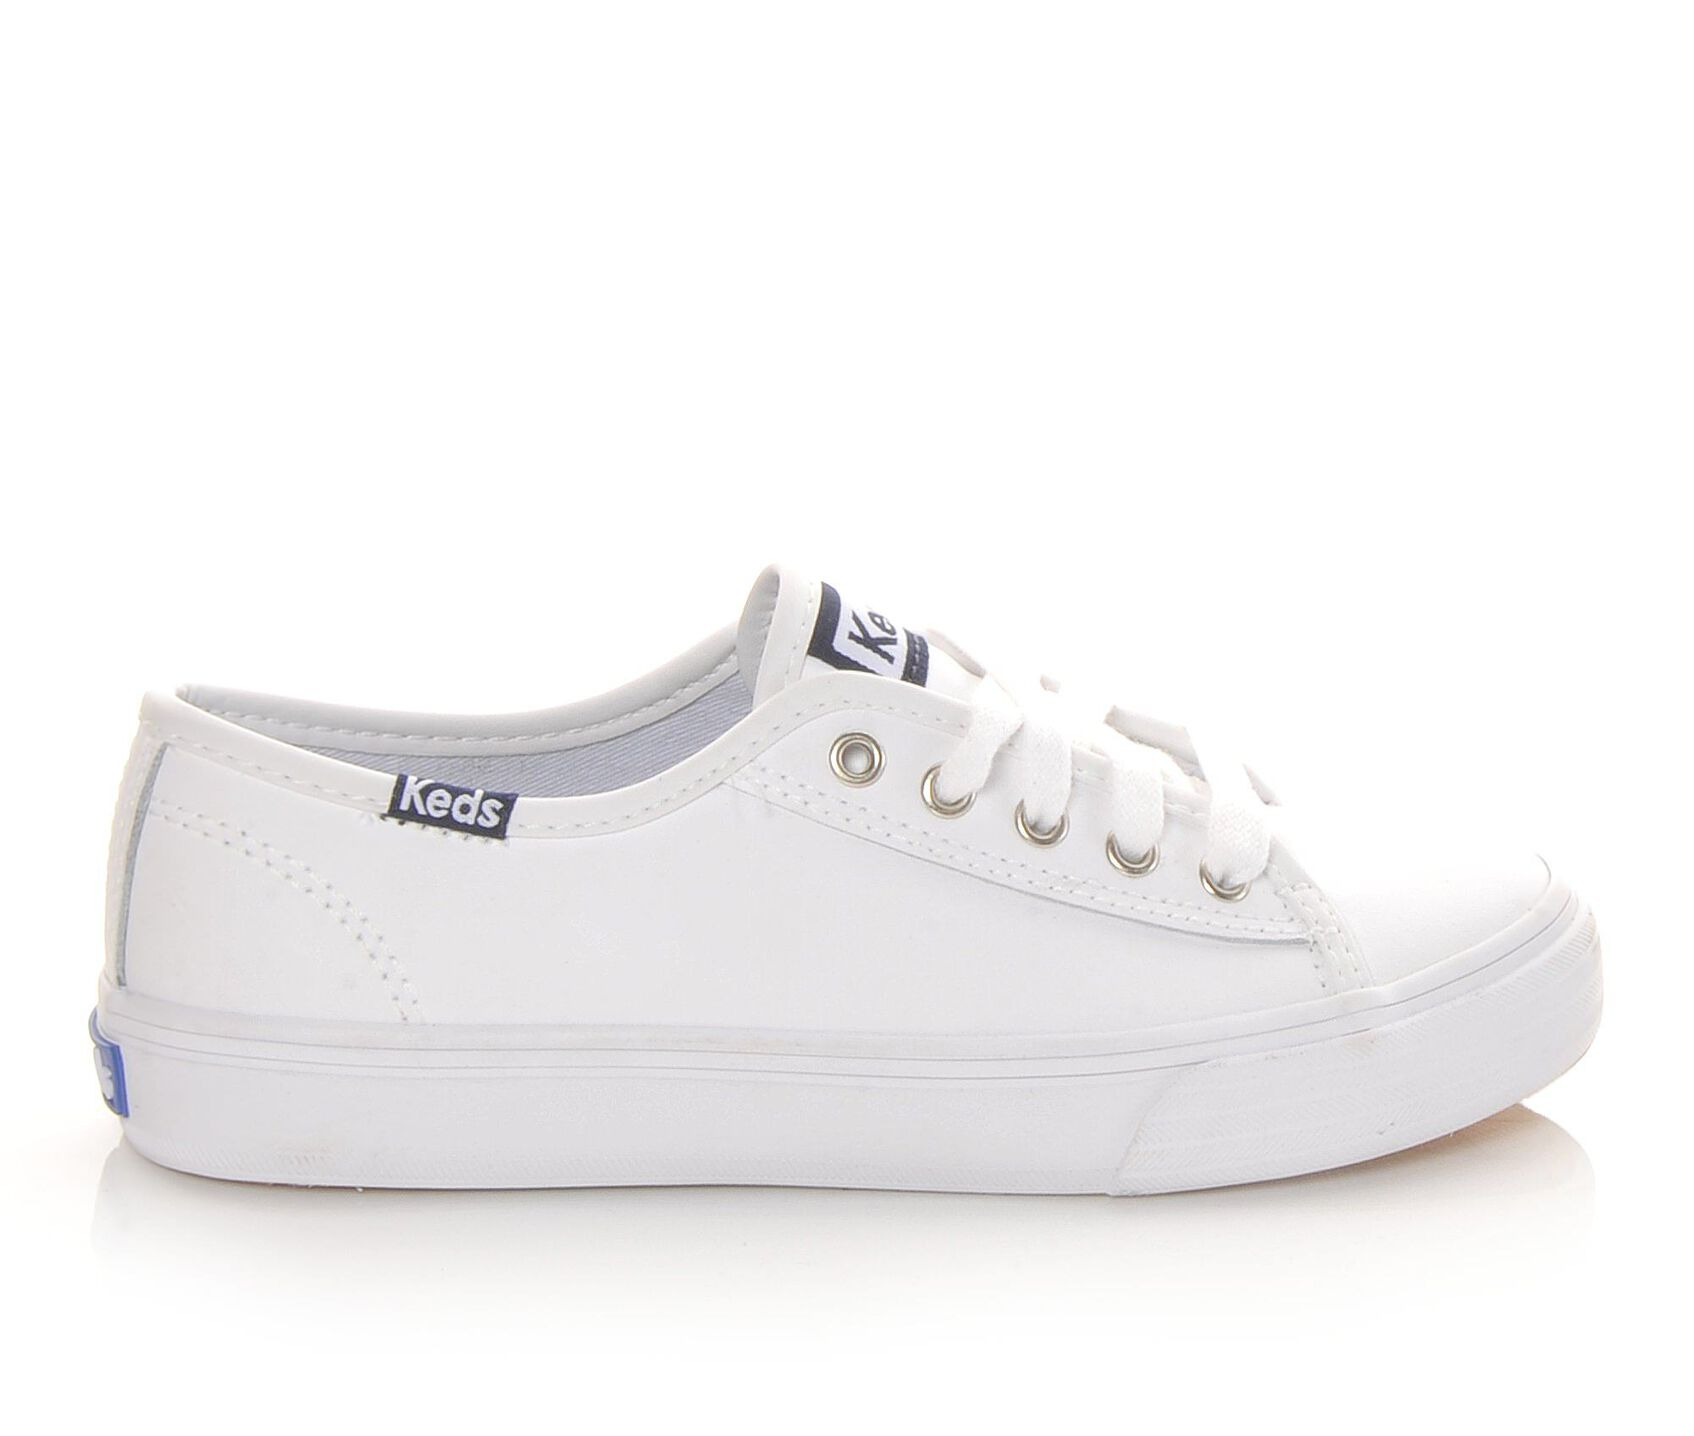 Black And White Keds Shoes